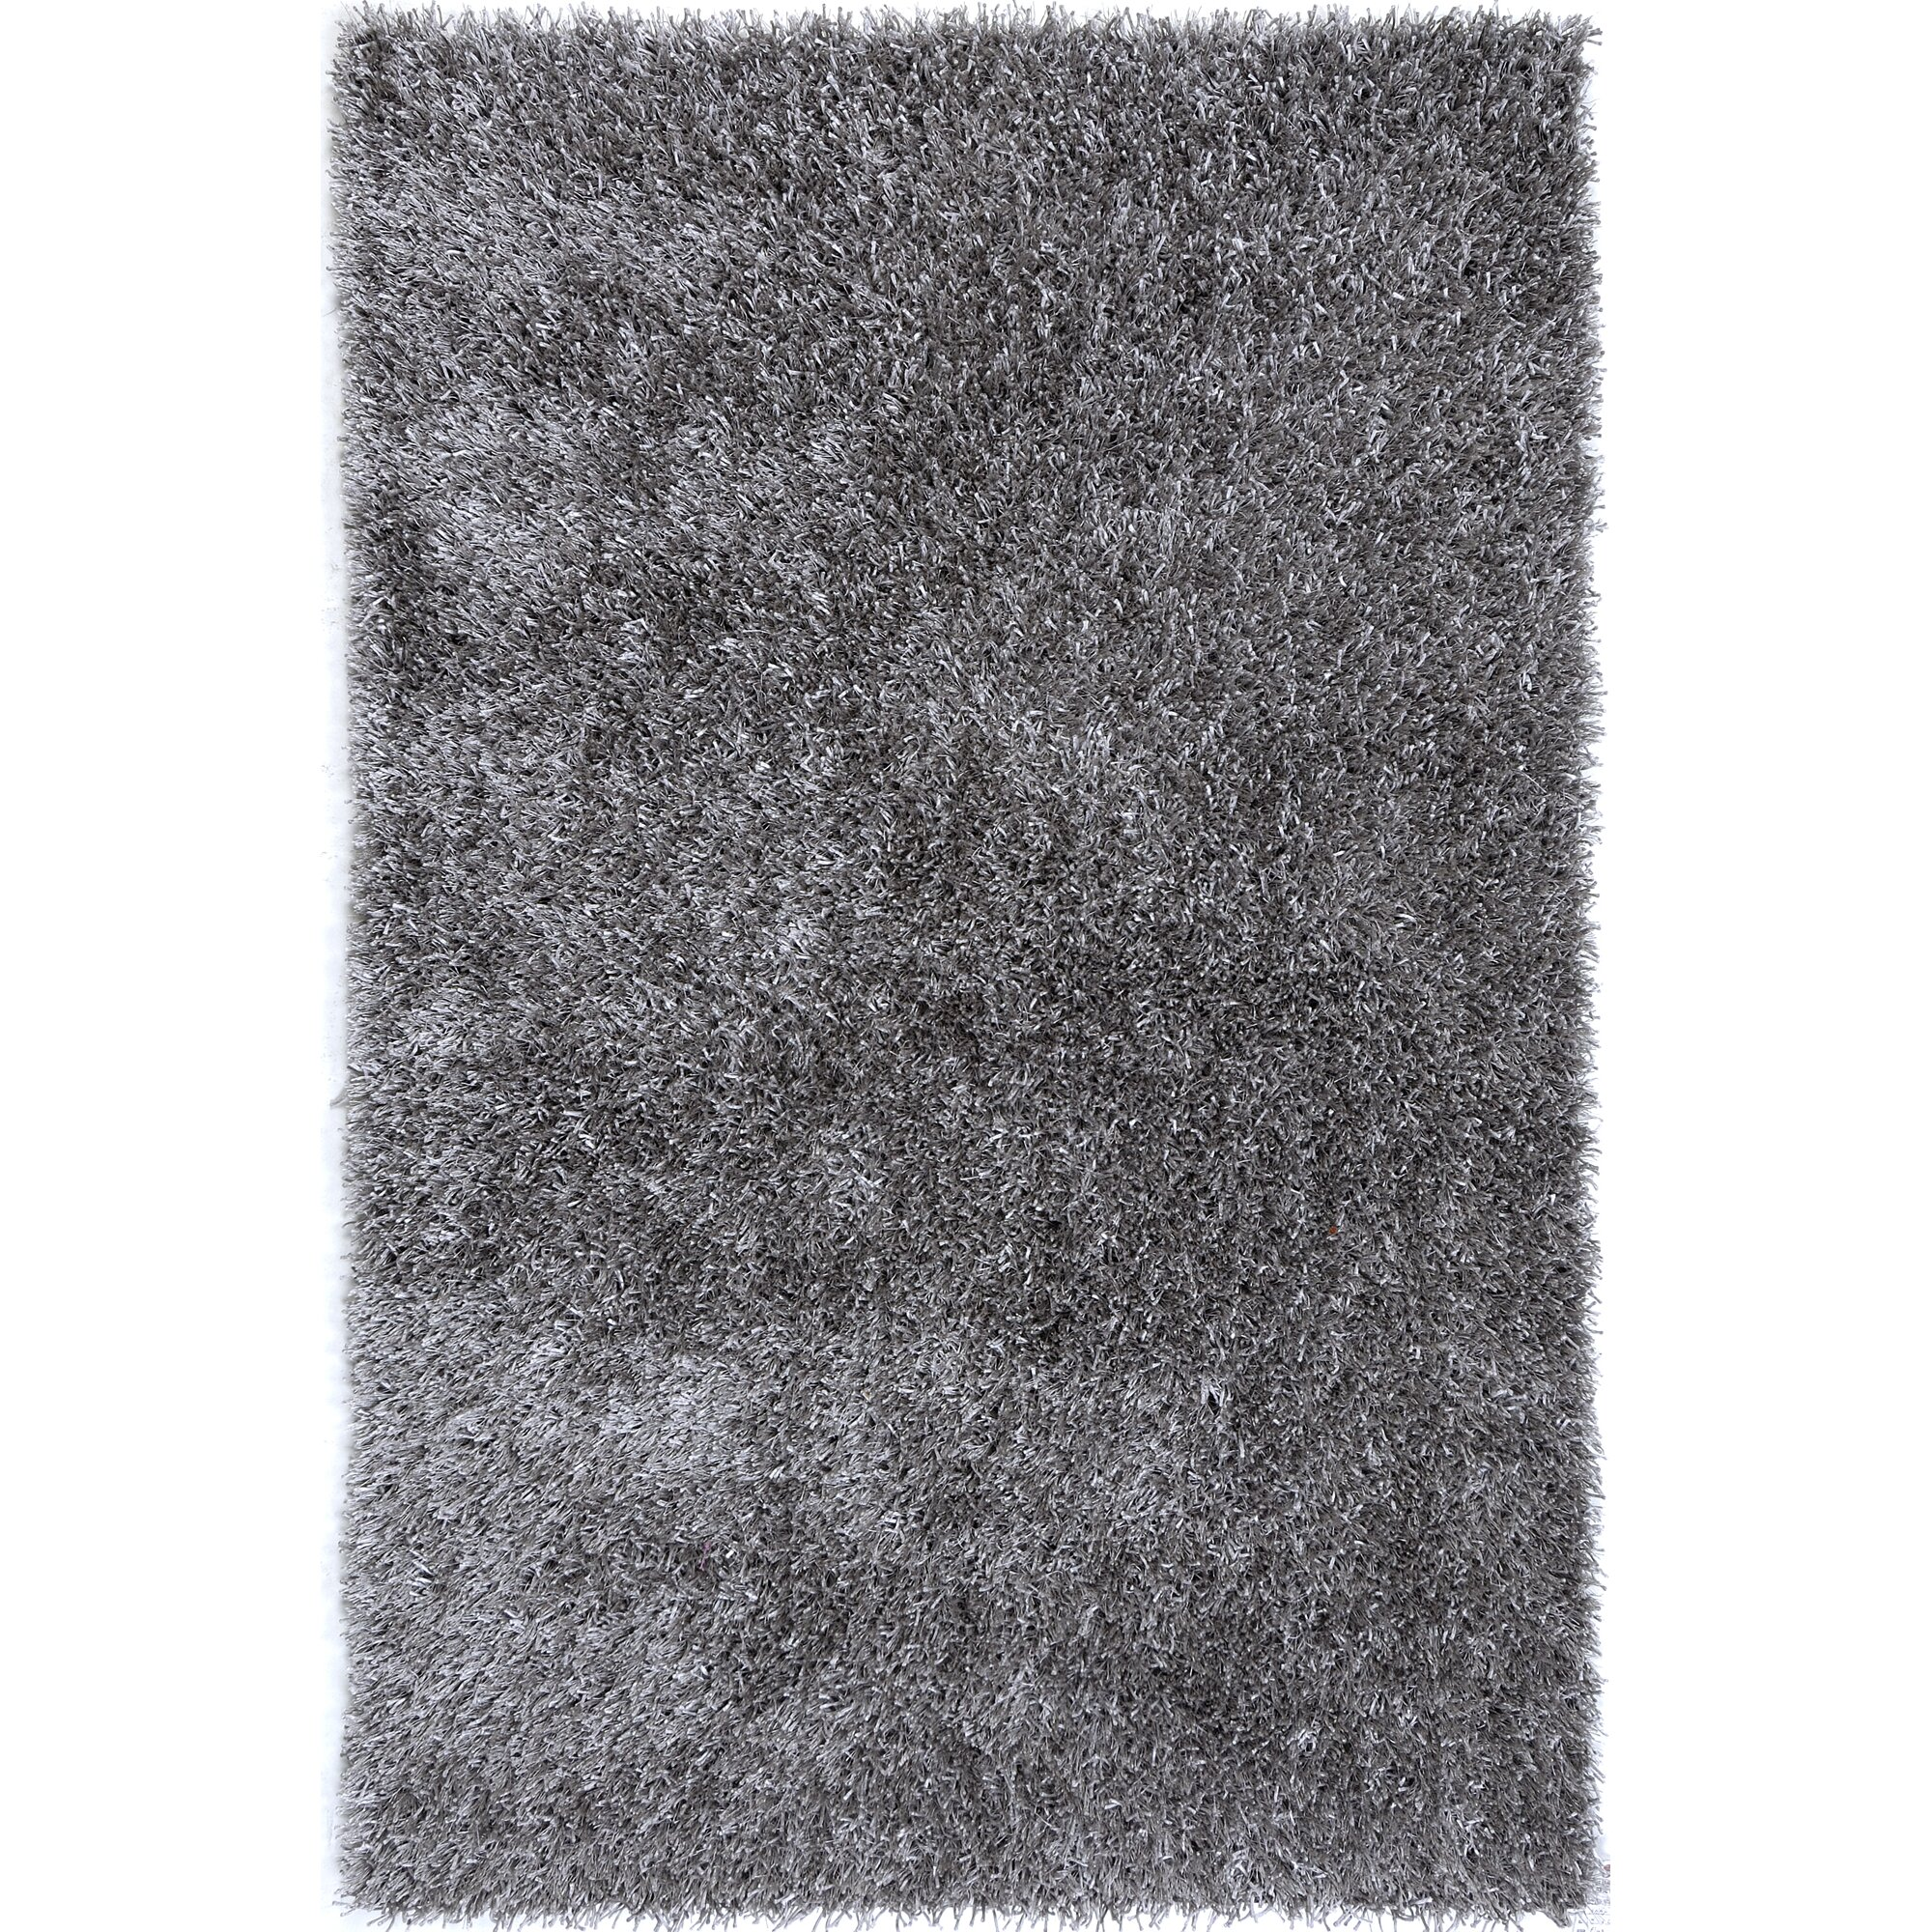 JaipurLiving Flux Cool Gray Shag Area Rug & Reviews